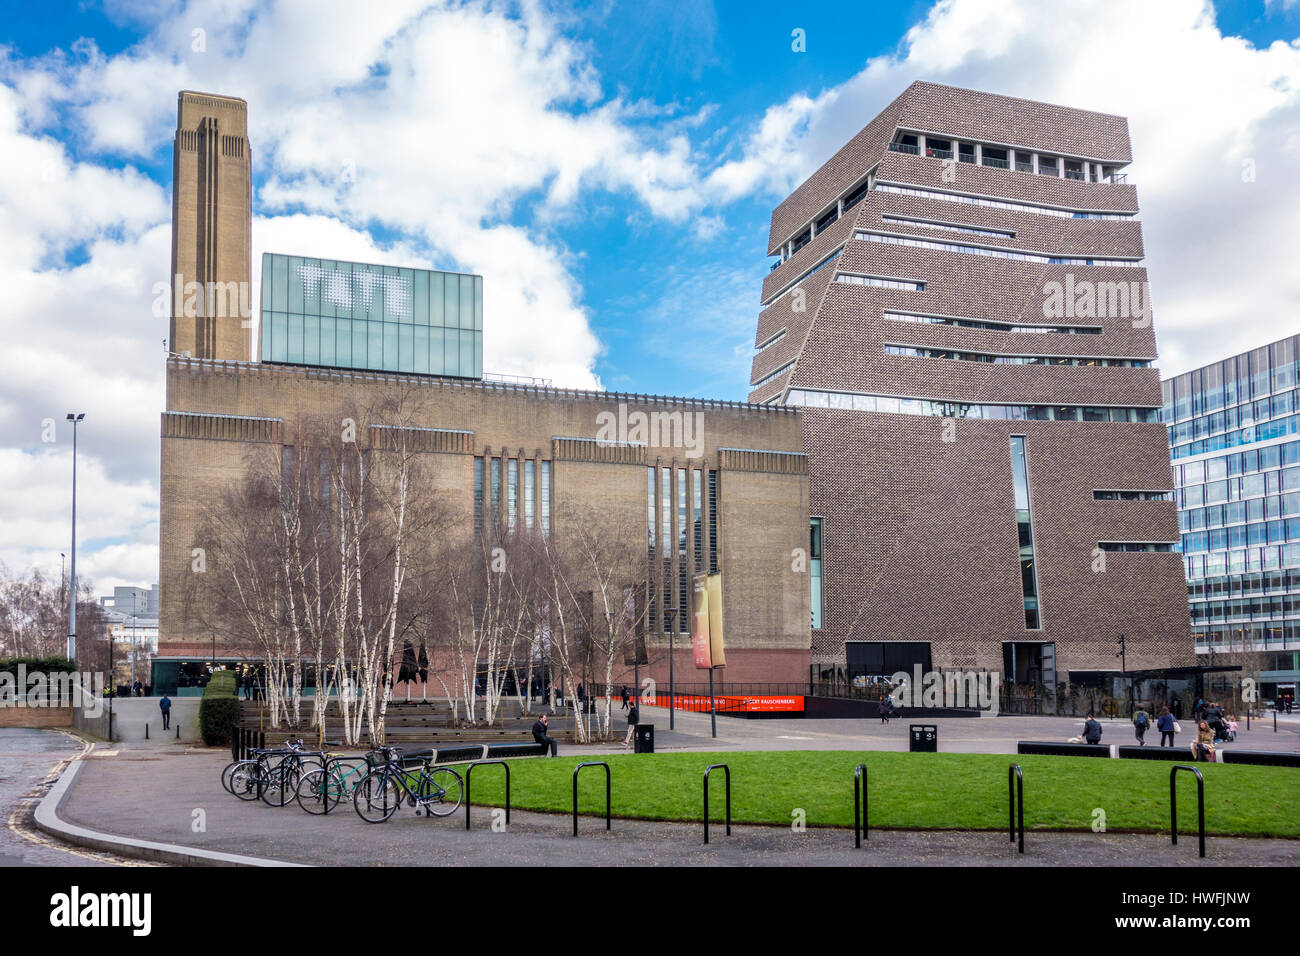 Exterior of Tate Modern Switch House by Herzog & de Meuron viewed from a public street, Bankside, London, UK - Stock Image